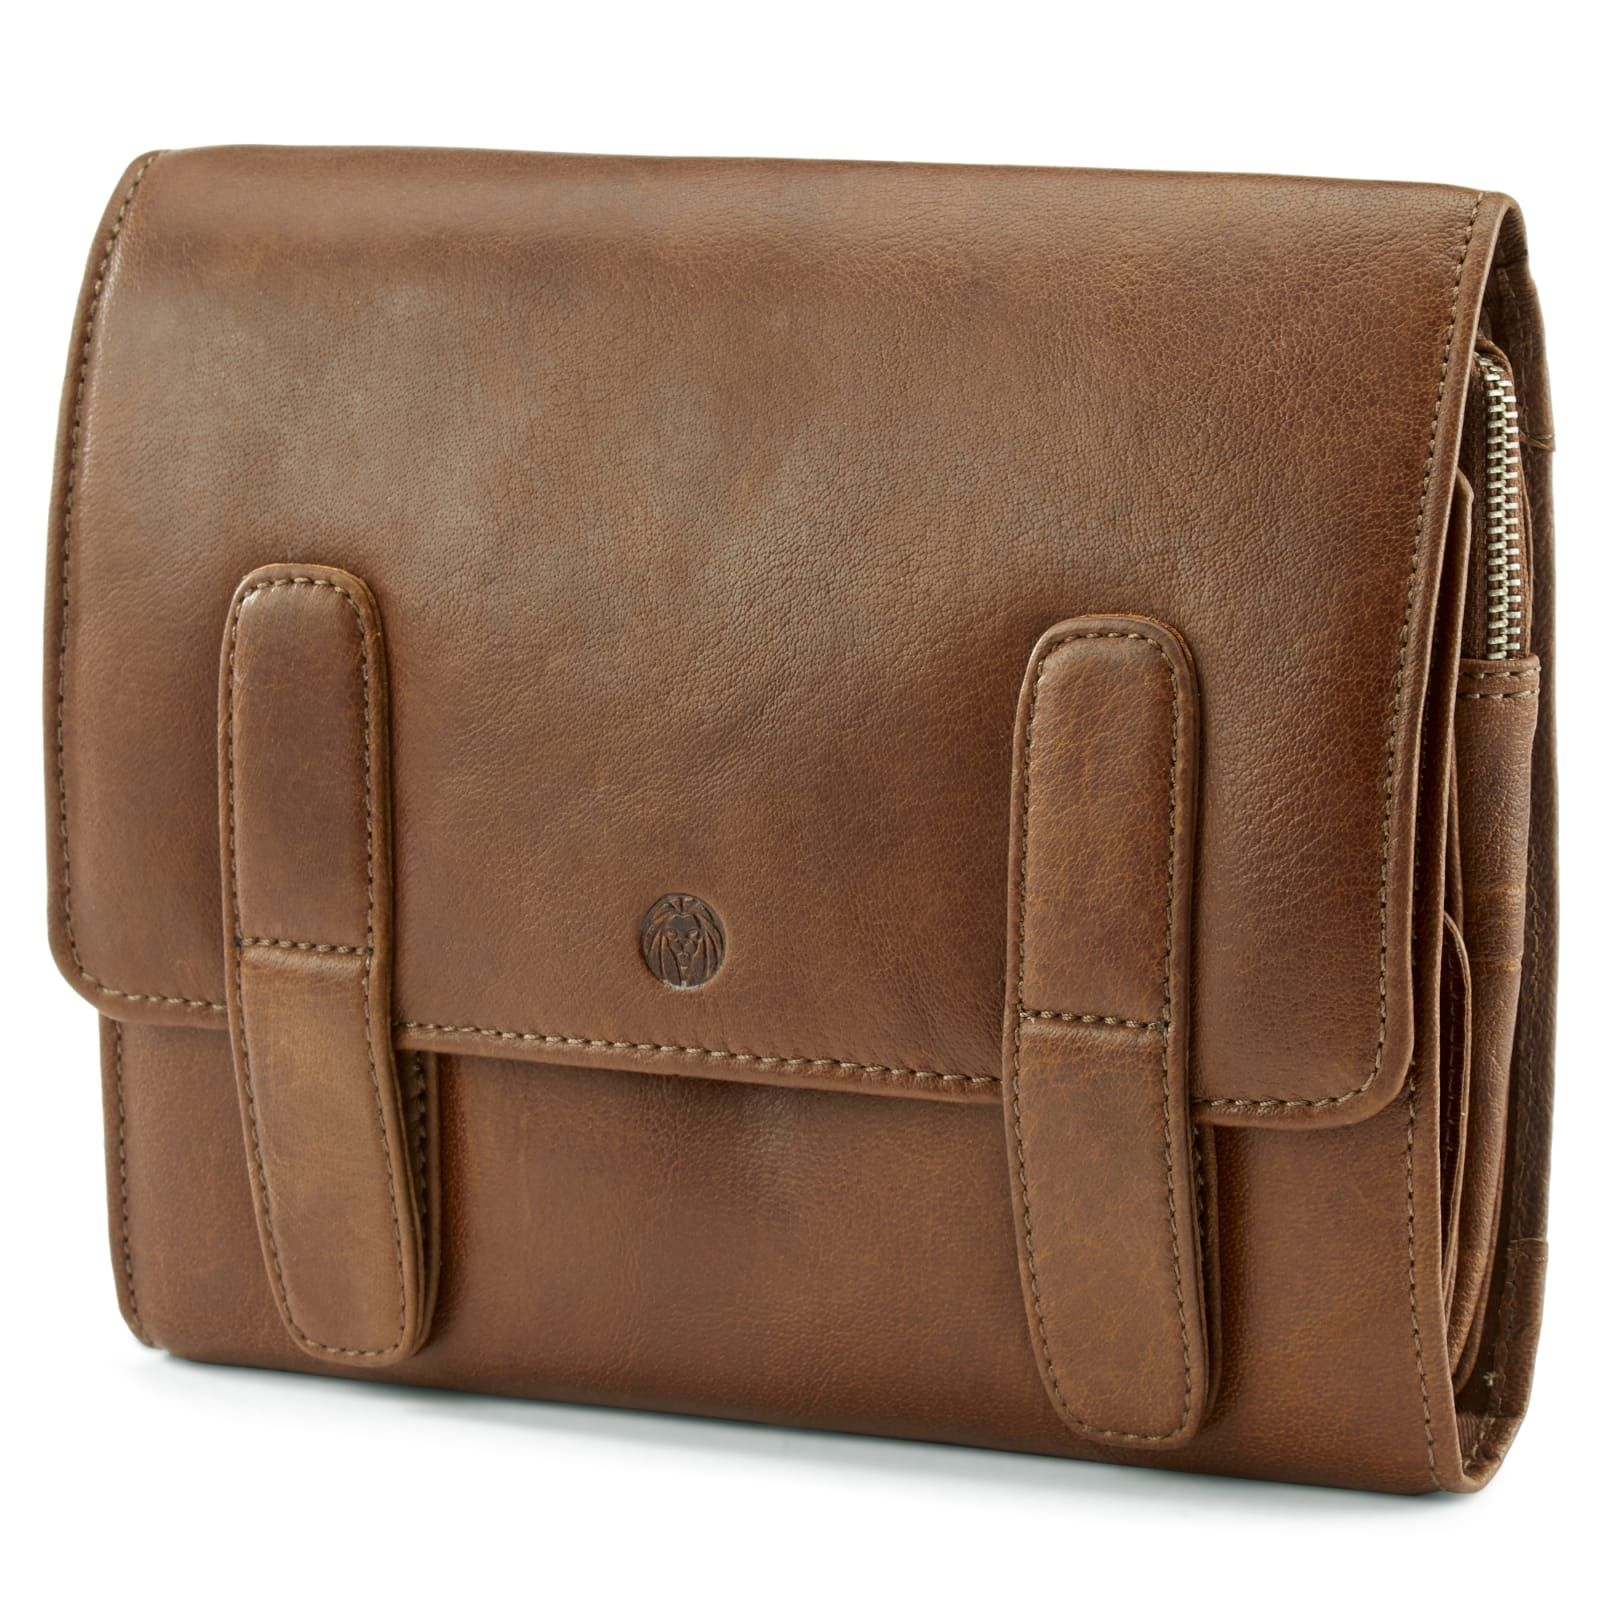 Photo of California Tan Hanging Toiletry Kit Ledertasche | Auf Lager! | Lucleon